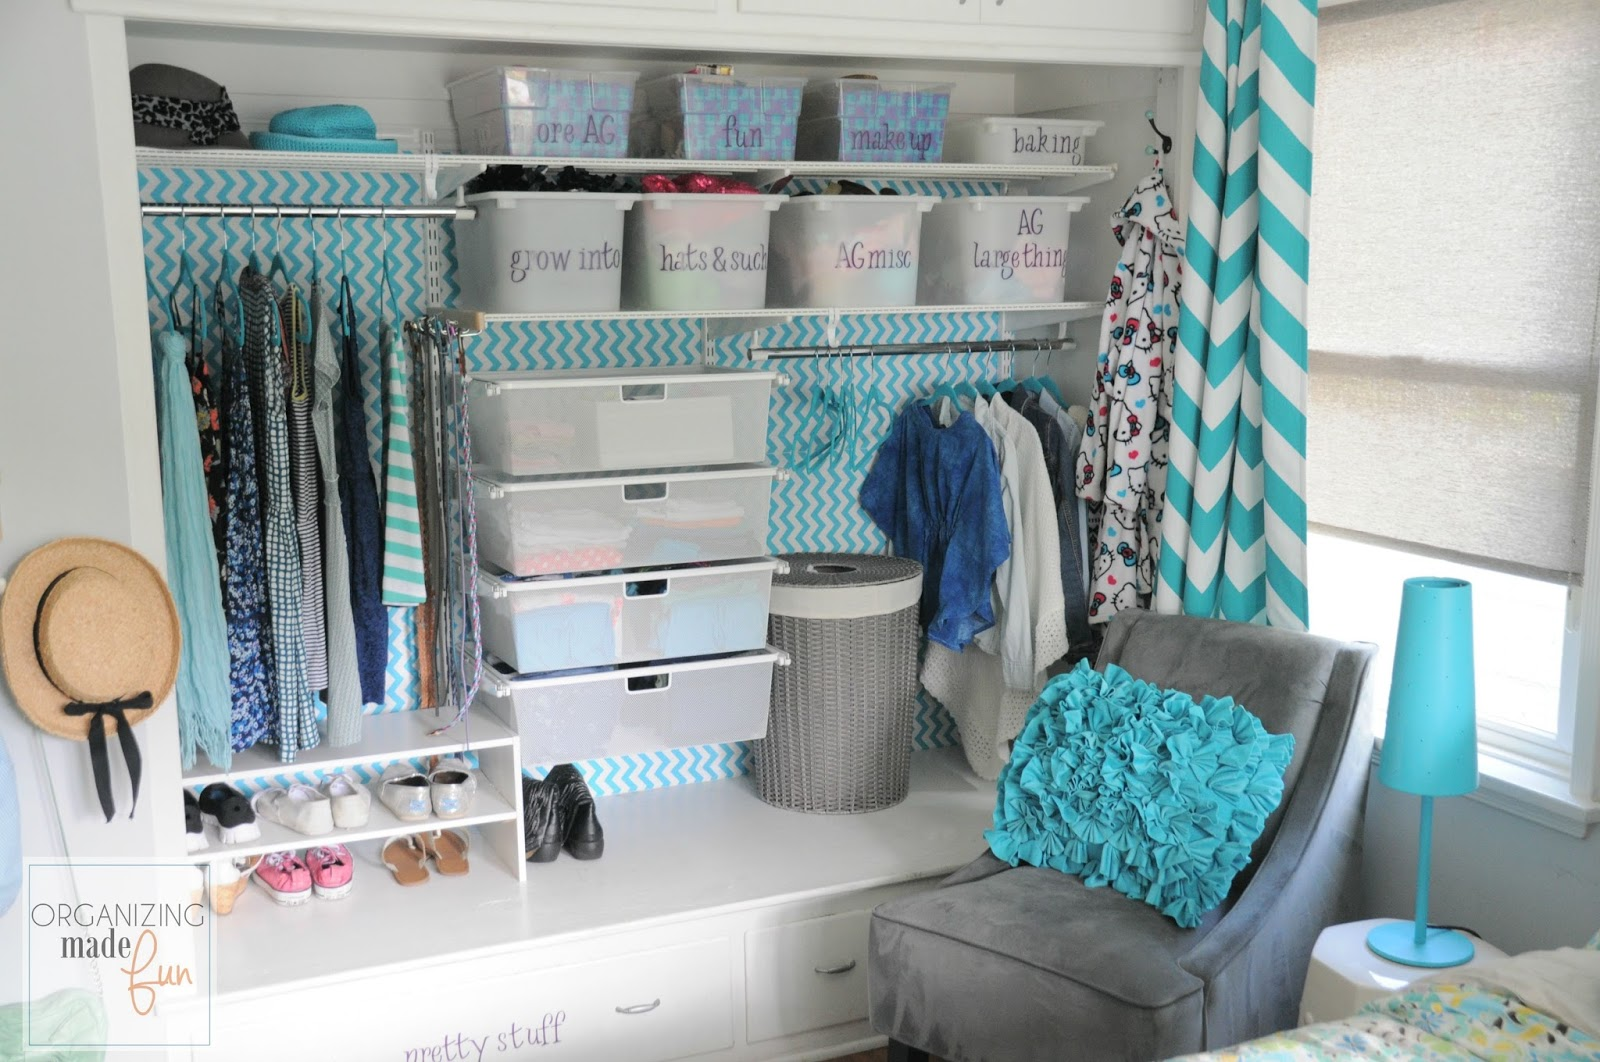 How To Organize Closet organized closet trends | organizing made fun: organized closet trends